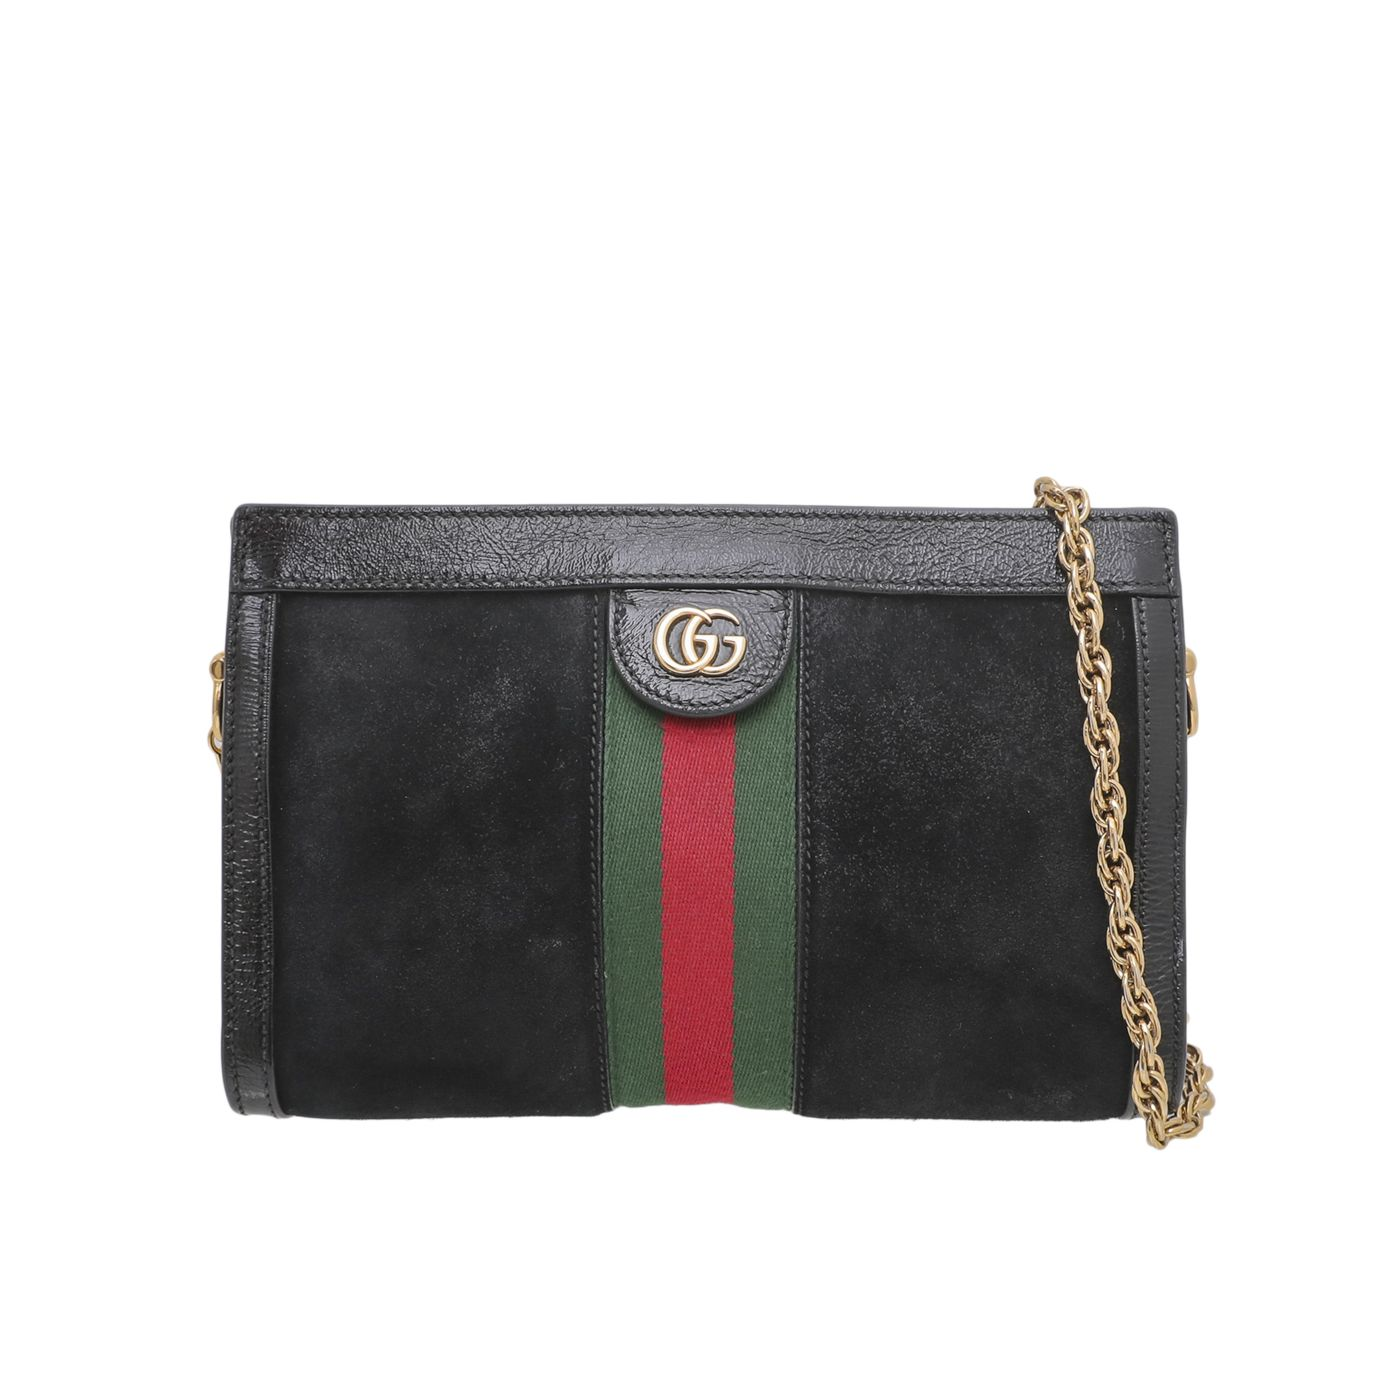 Gucci Tricolor Ophidia GG Shoulder Bag Small